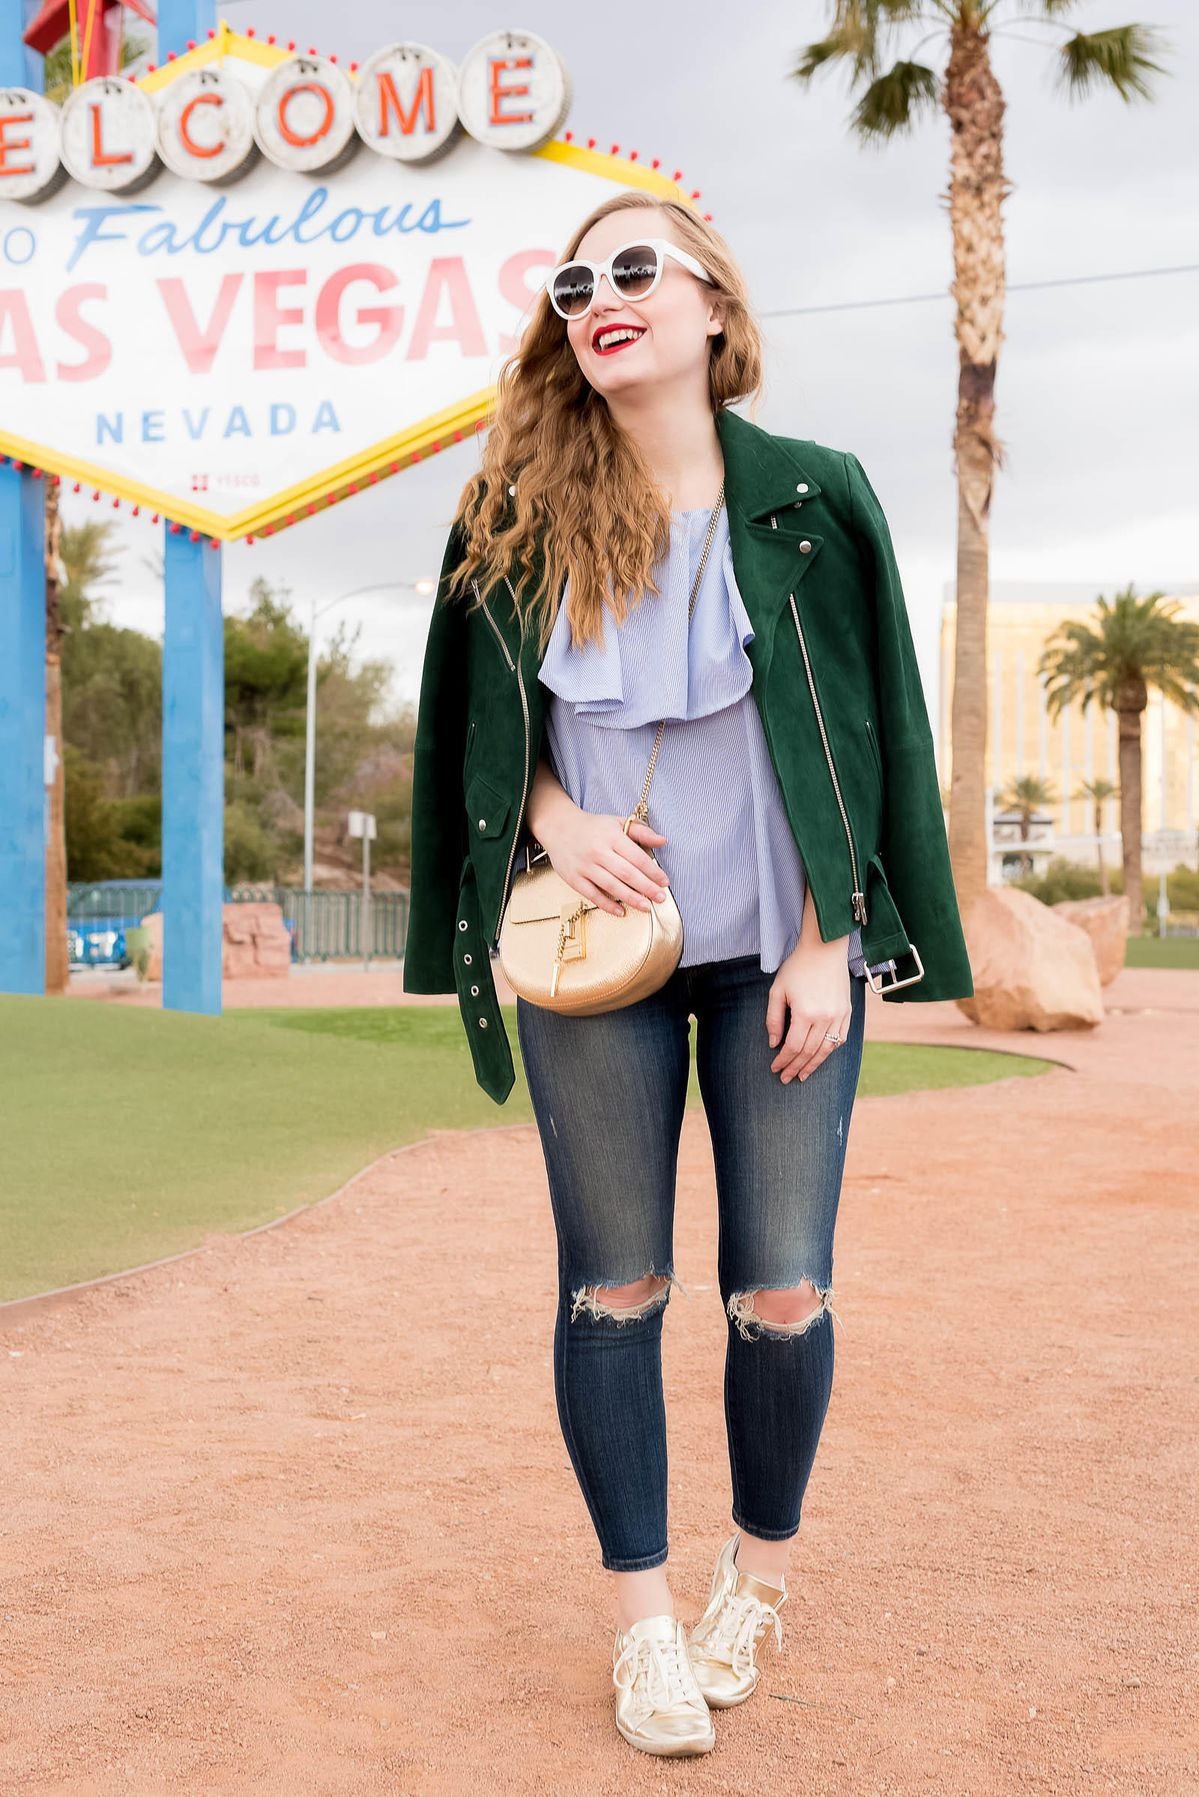 89954a79e64f622efb246882f142cebb - Winter vacations in Las Vegas winter outfits 10 best outfits to wear